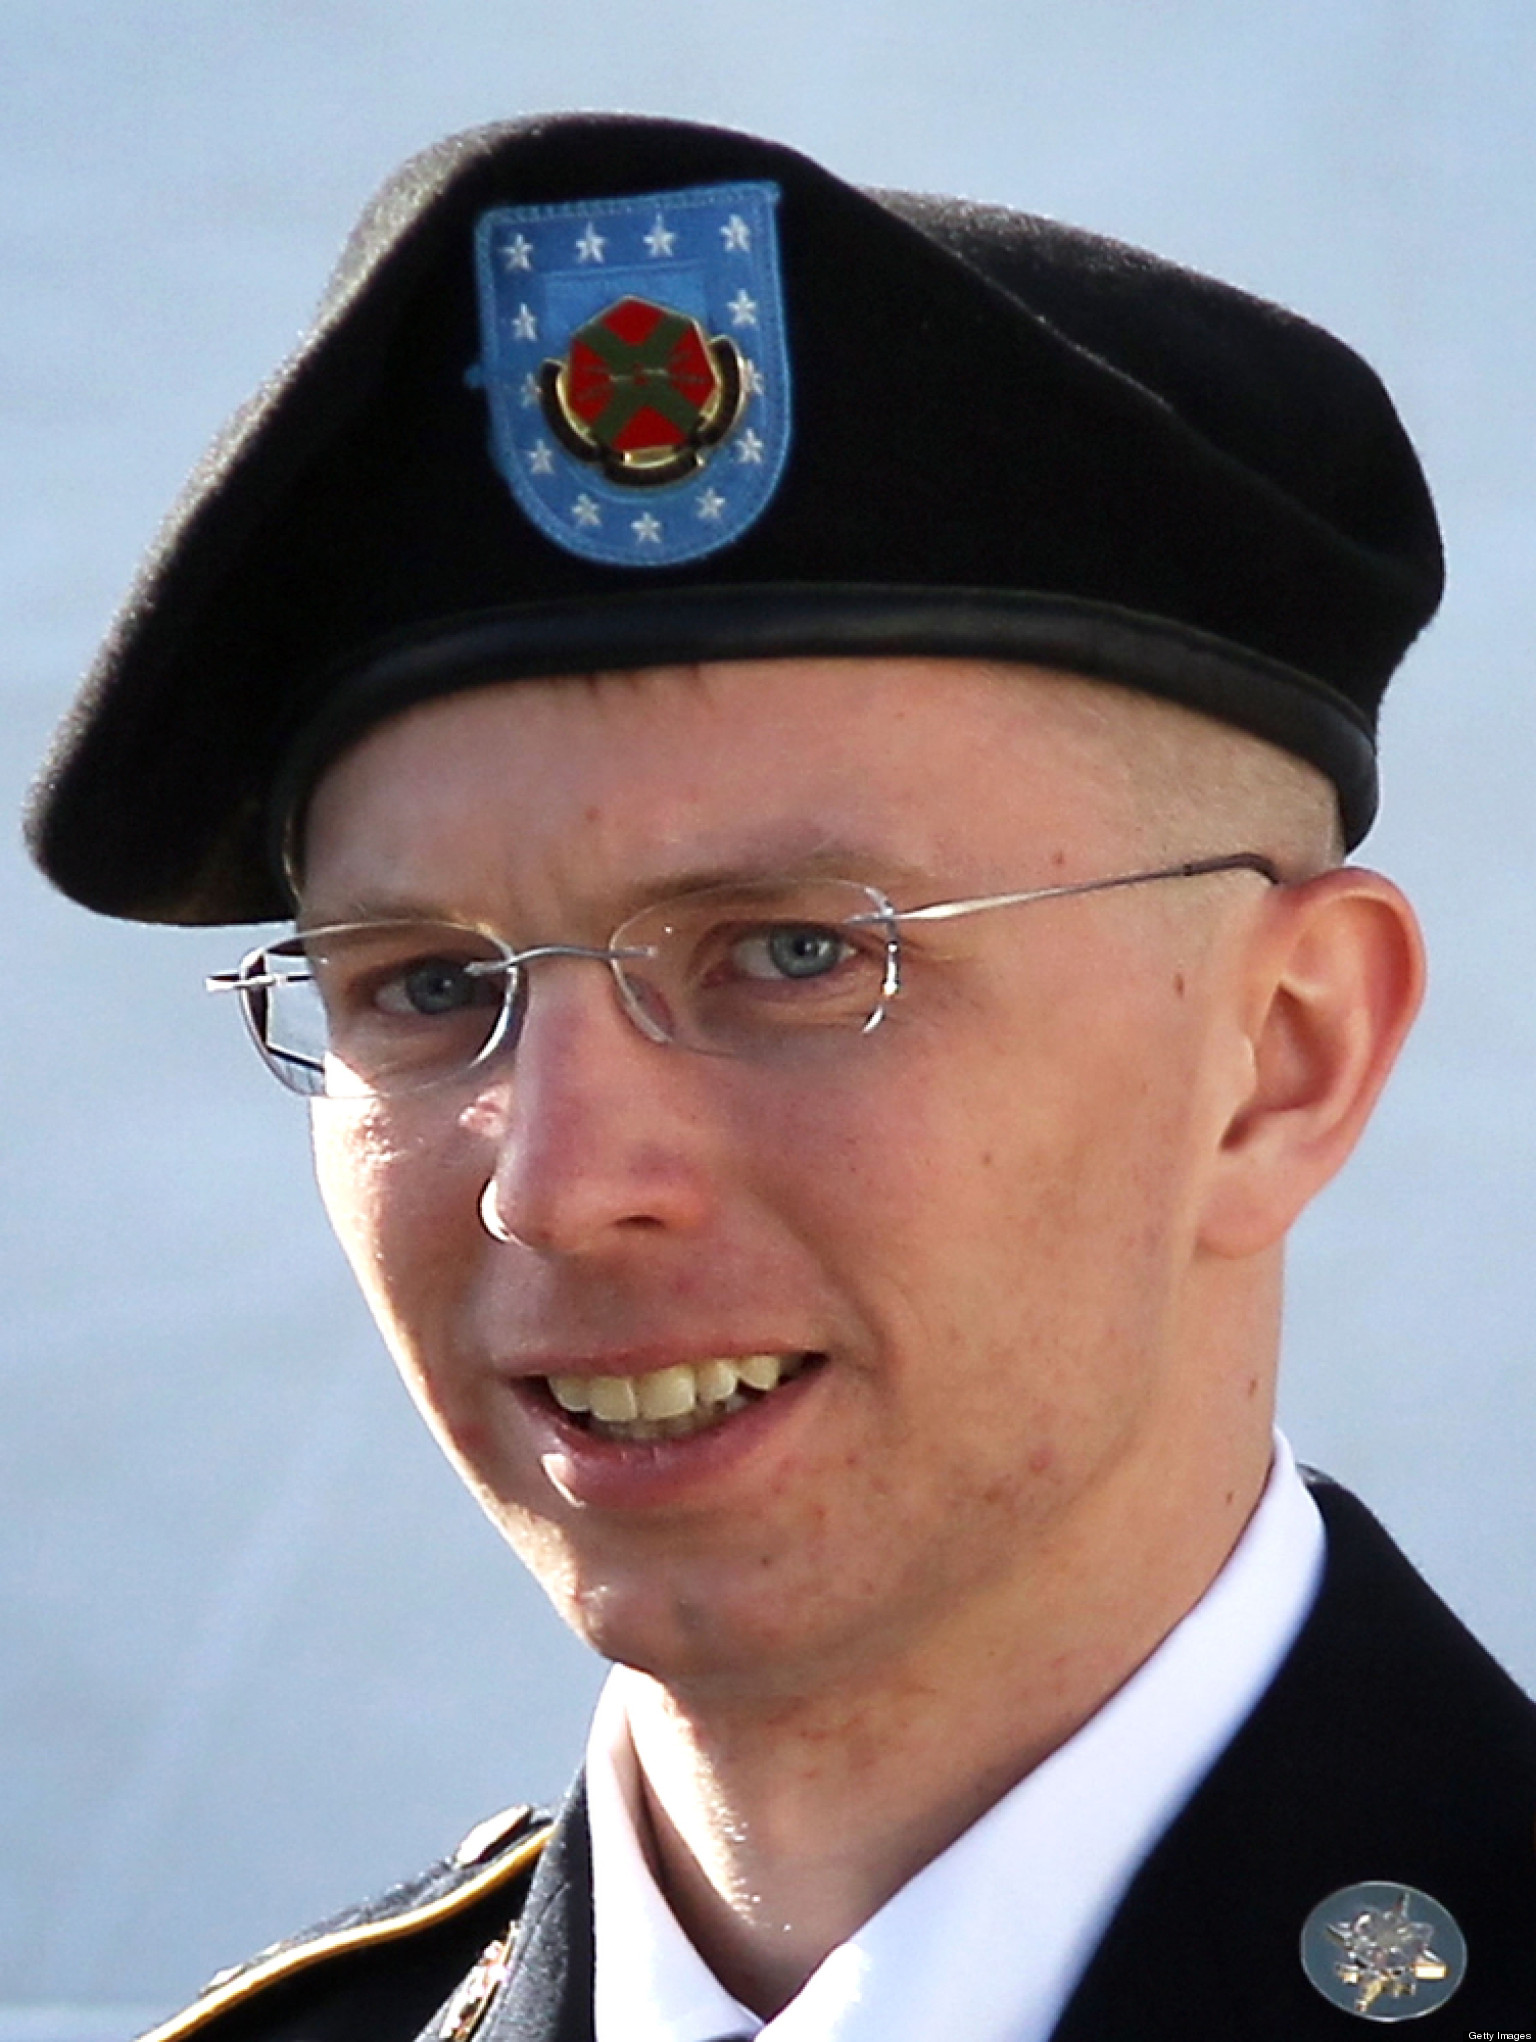 57 Bradley Manning Jokes By Professional Comedians